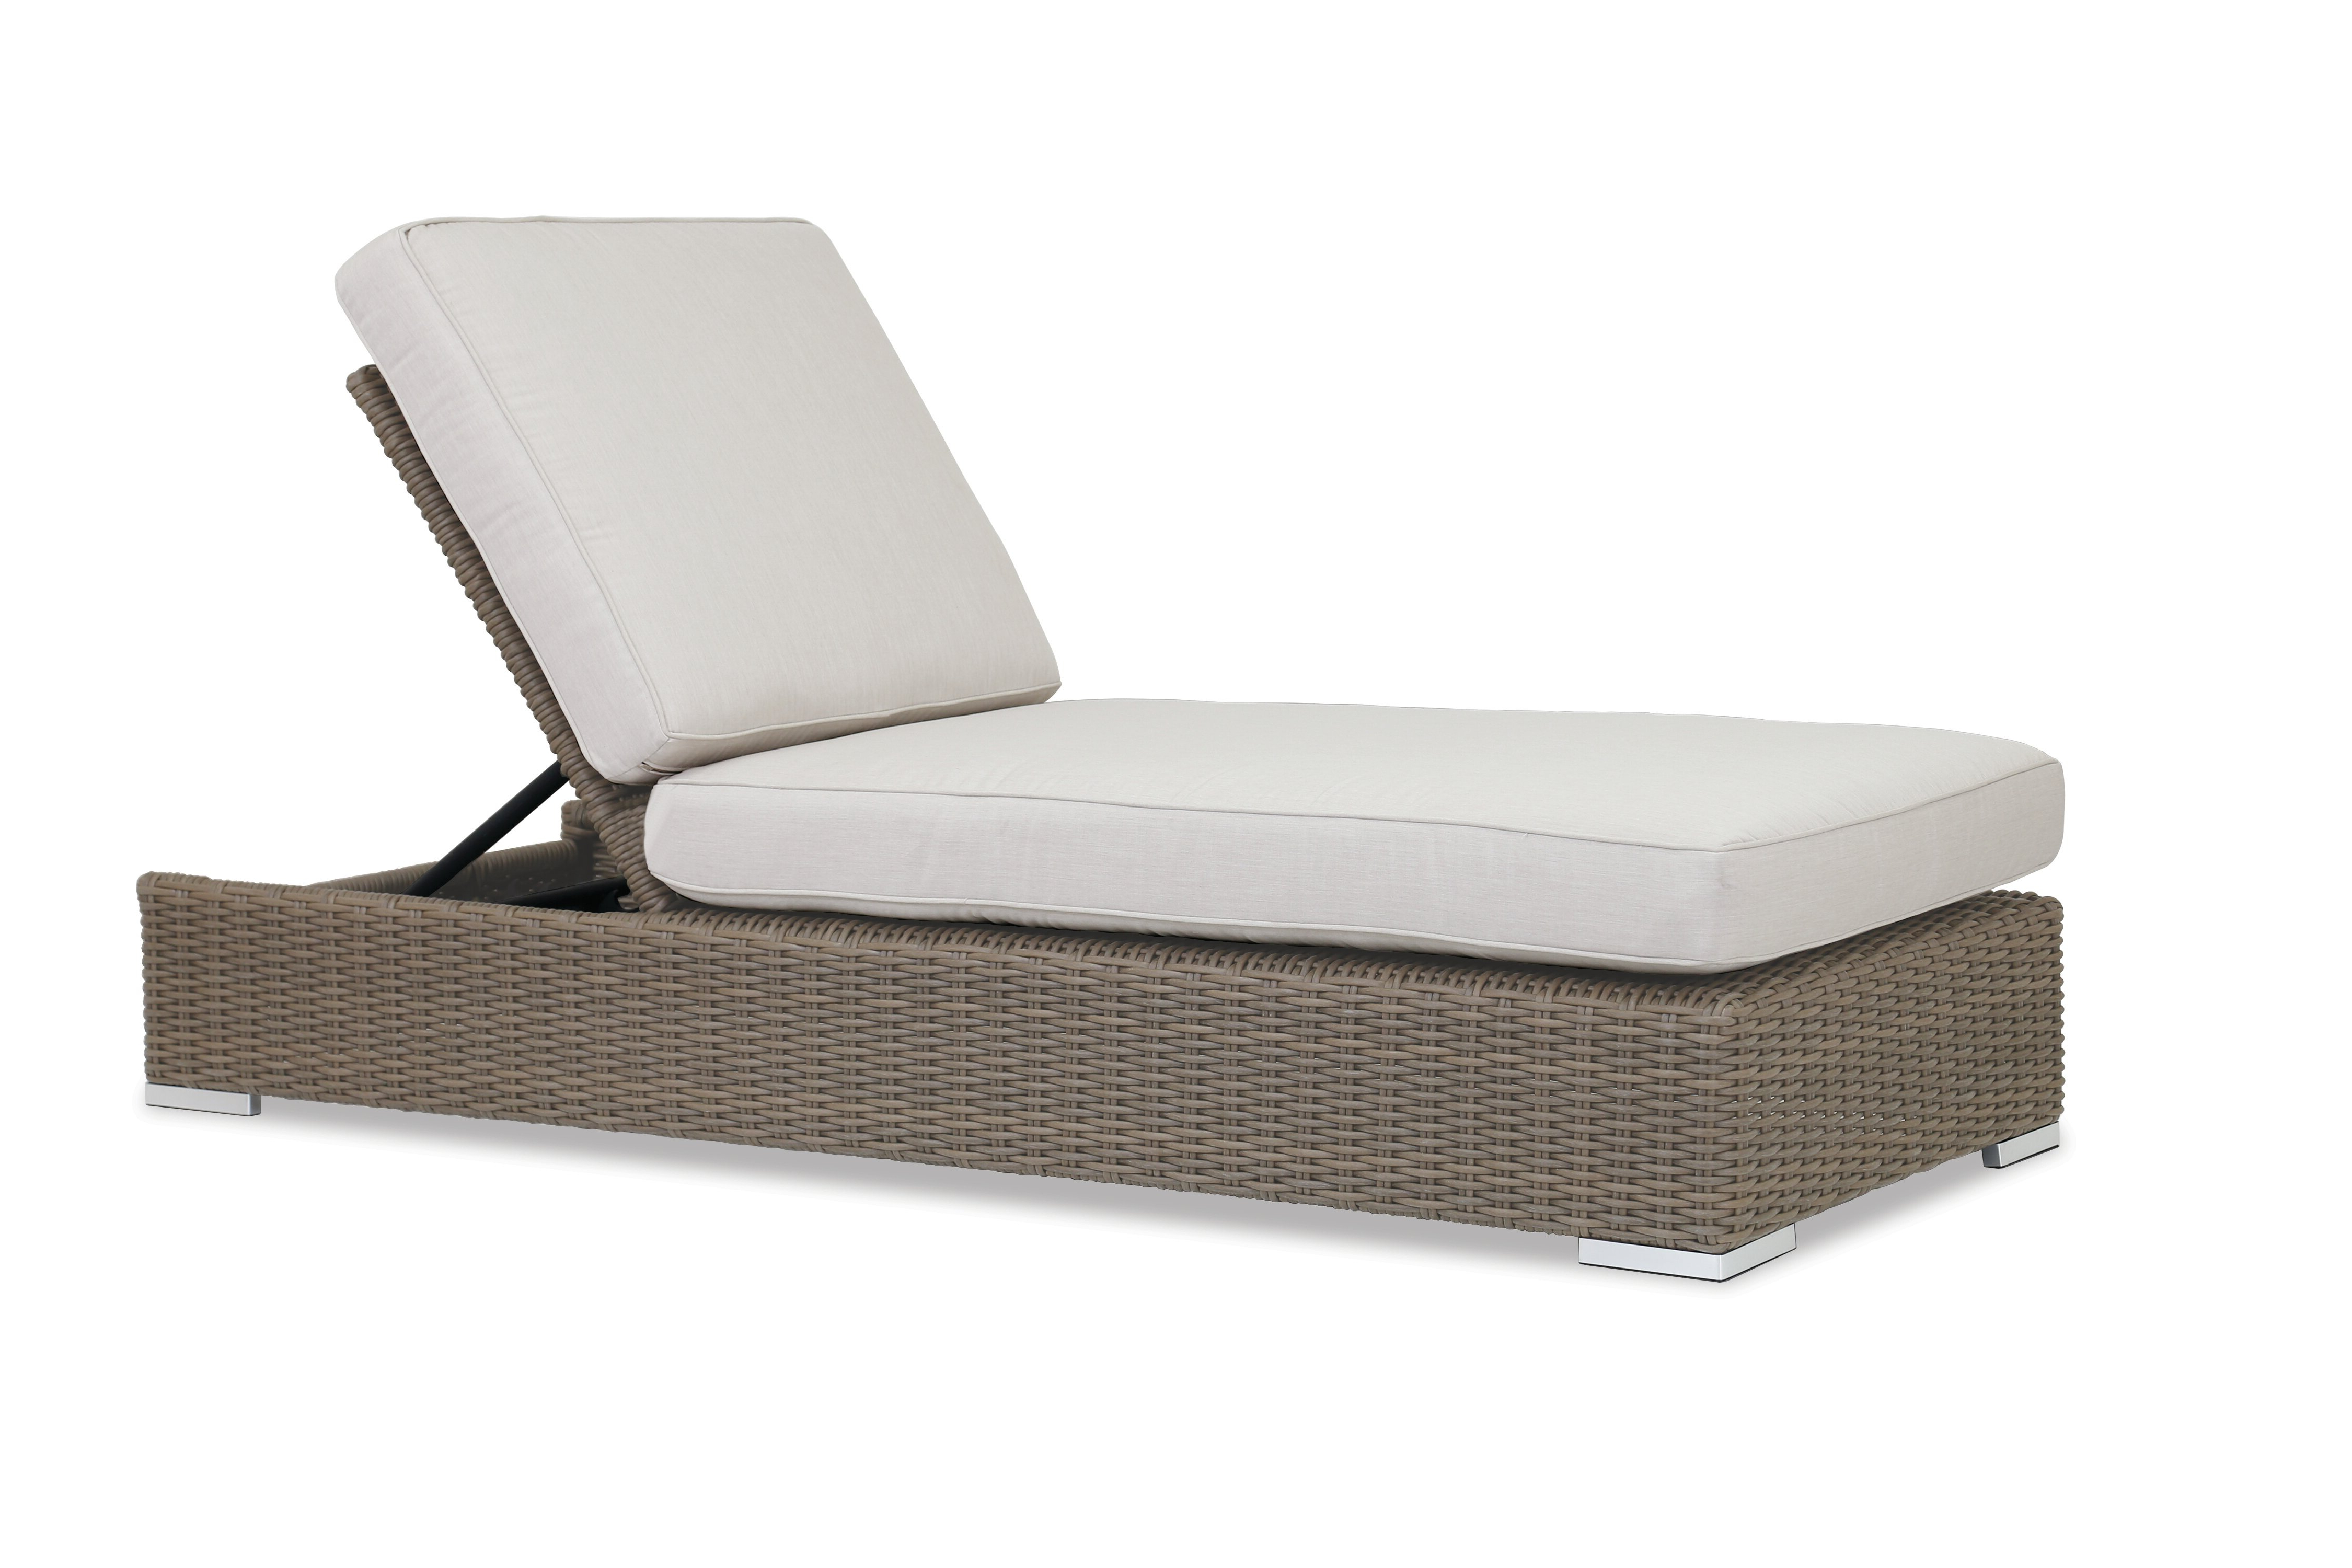 Most Current Coronado Reclining Chaise Lounge With Cushion Throughout White Wicker Adjustable Chaise Loungers With Cushions (View 9 of 25)